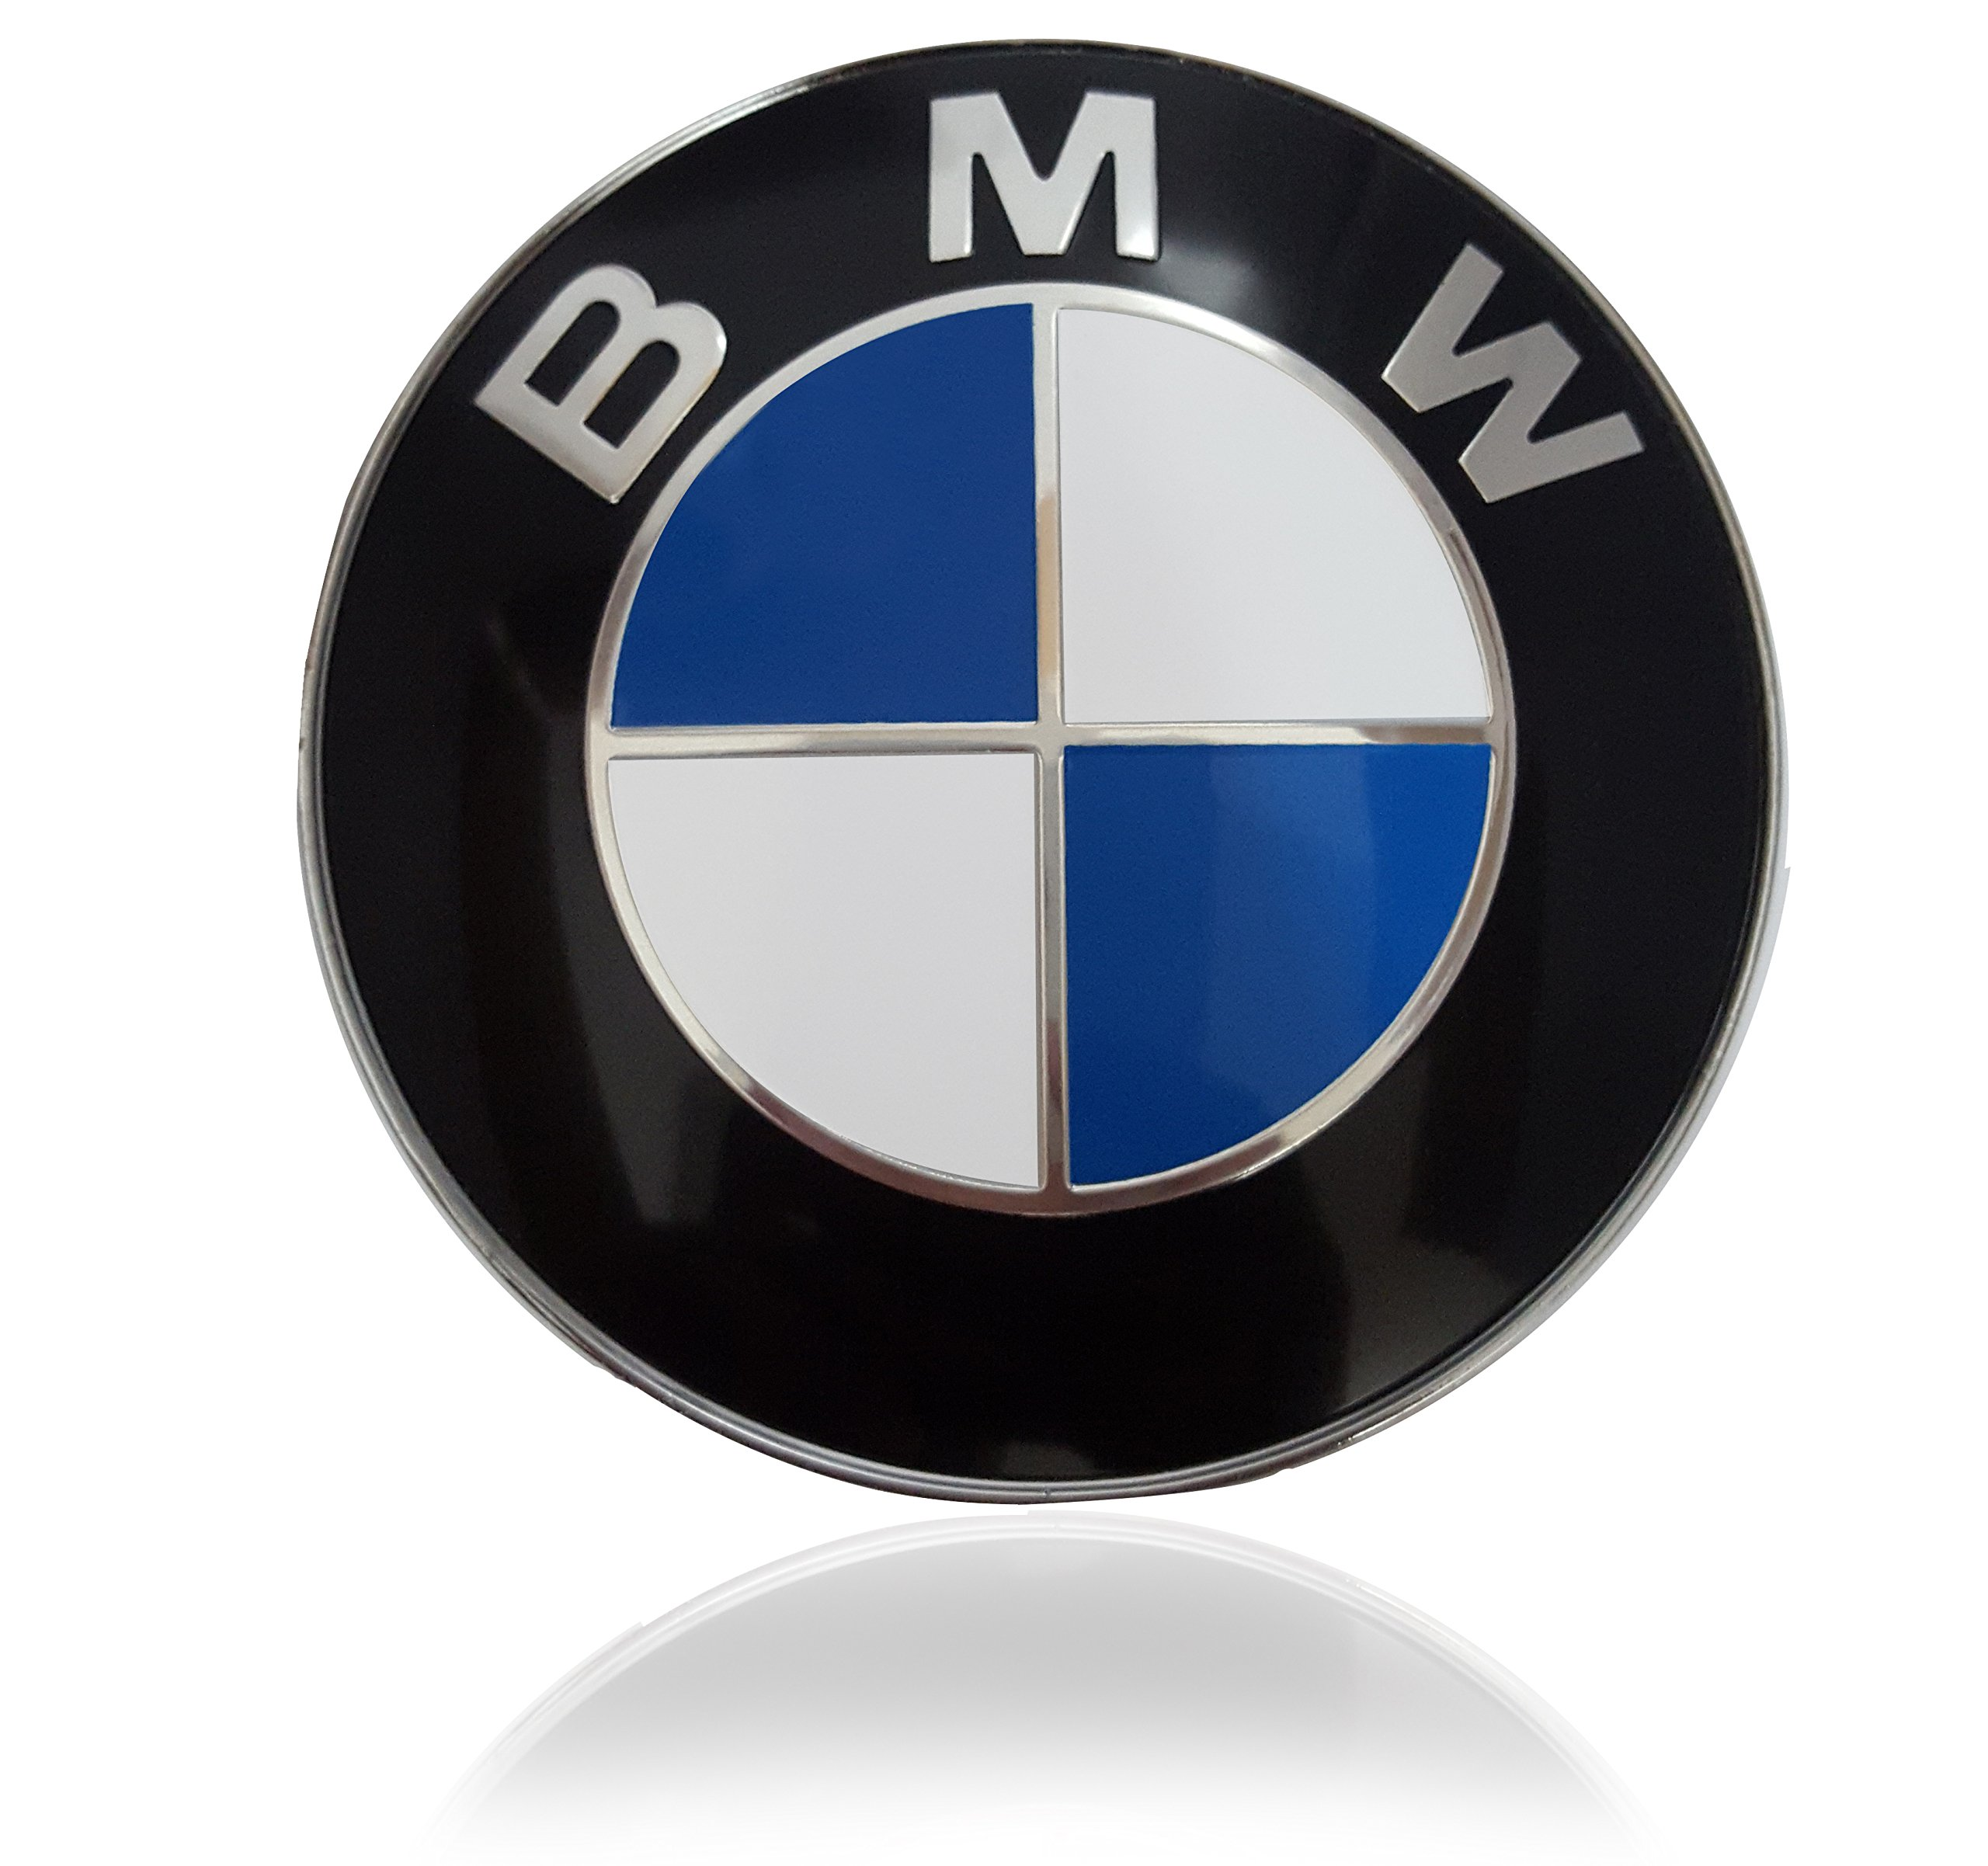 Bmw Emblem High Quality Logo Replacement For Hood Trunk